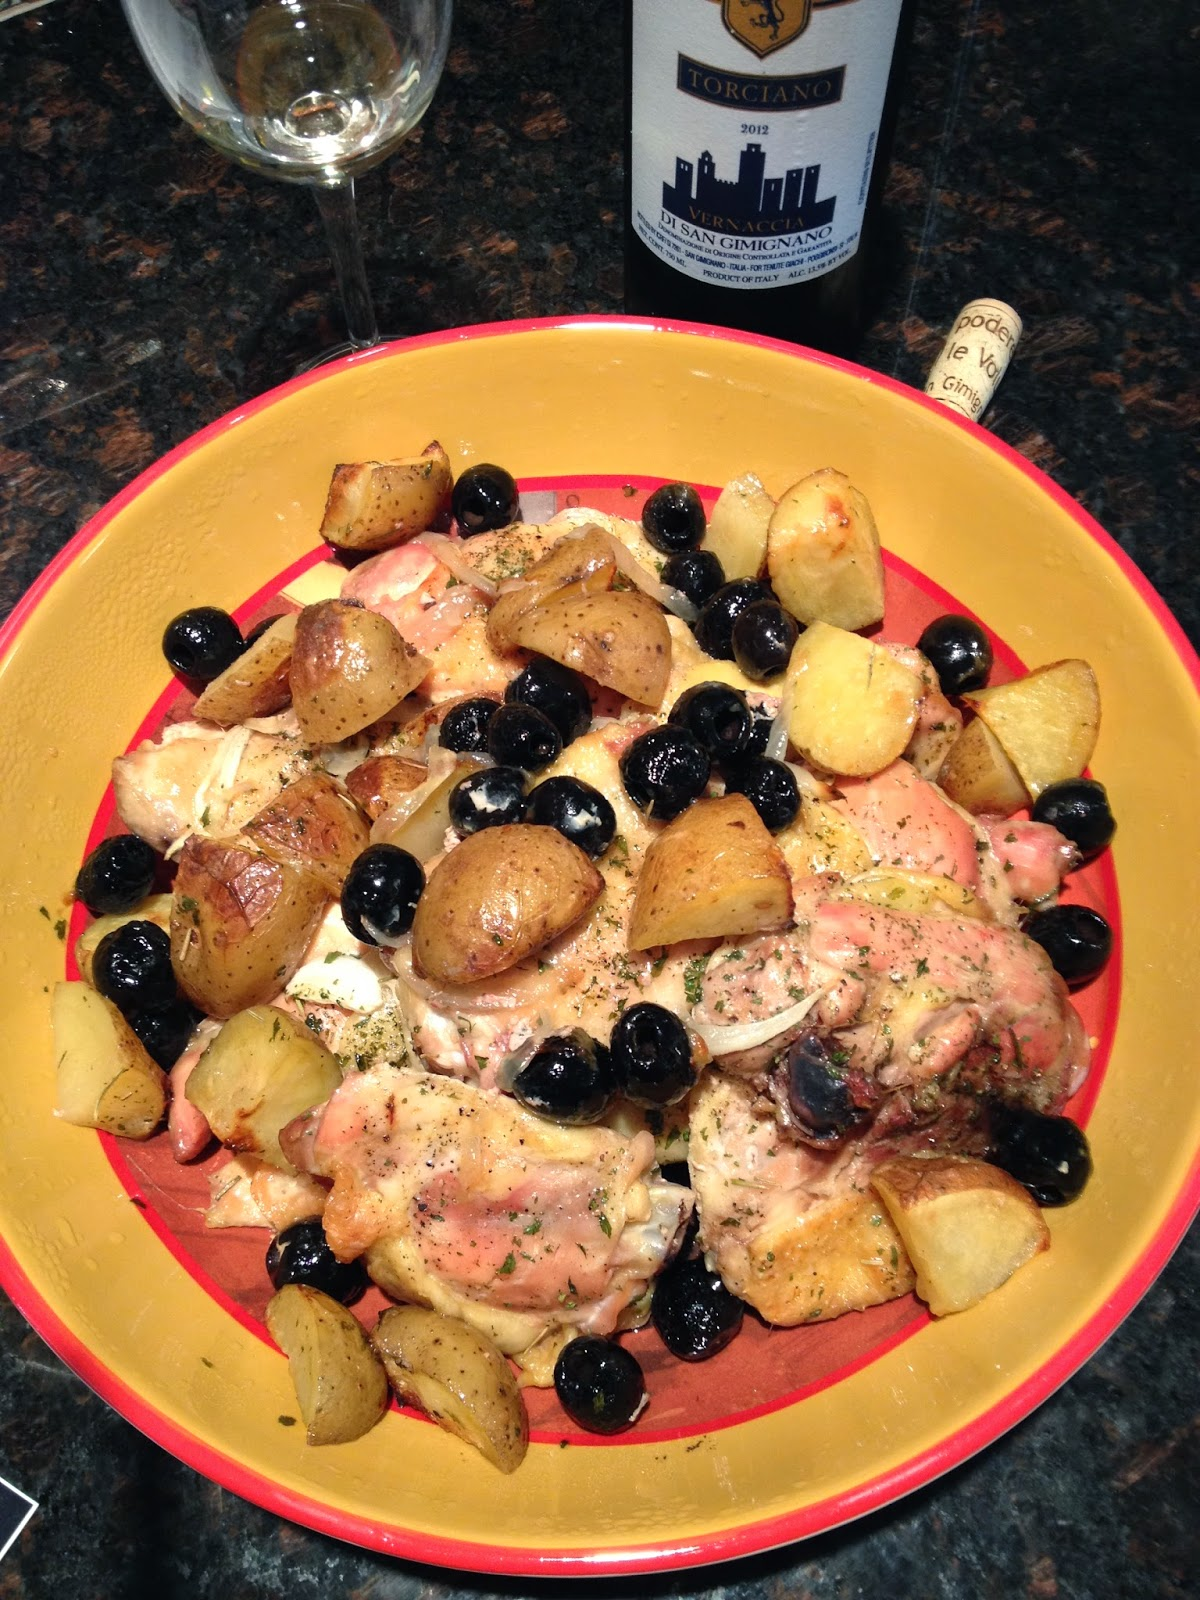 Roasted chicken with potatoes and black olives